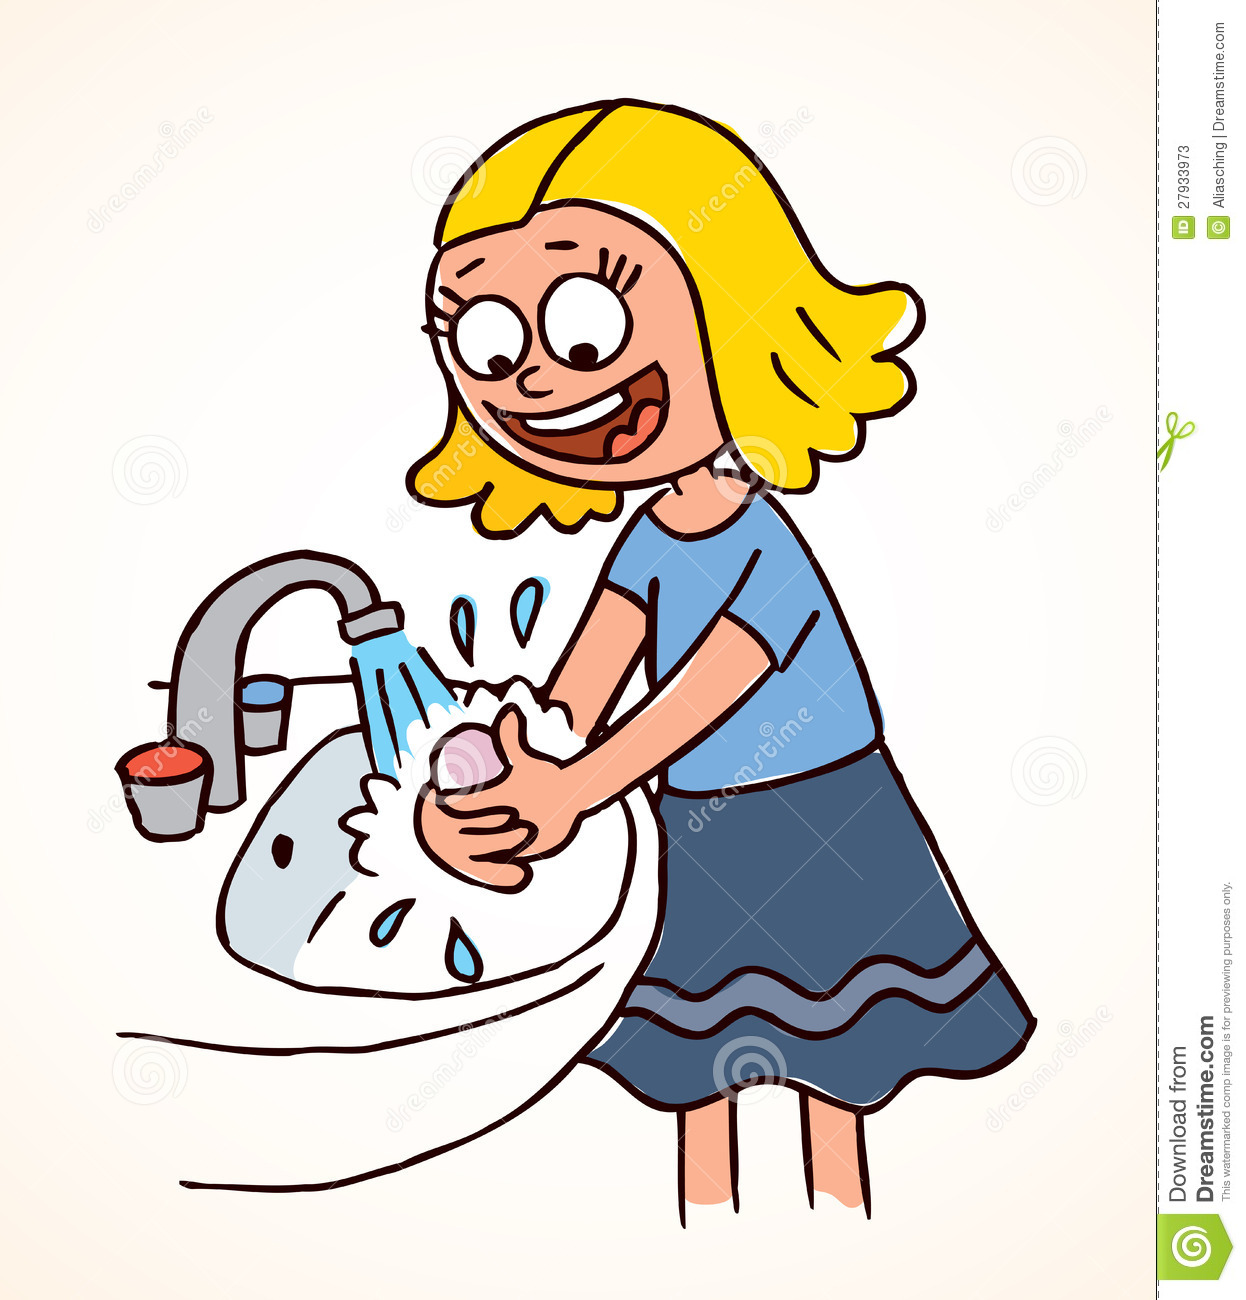 Child washing hands clipart transparent library Child washing hands clipart - ClipartFest transparent library